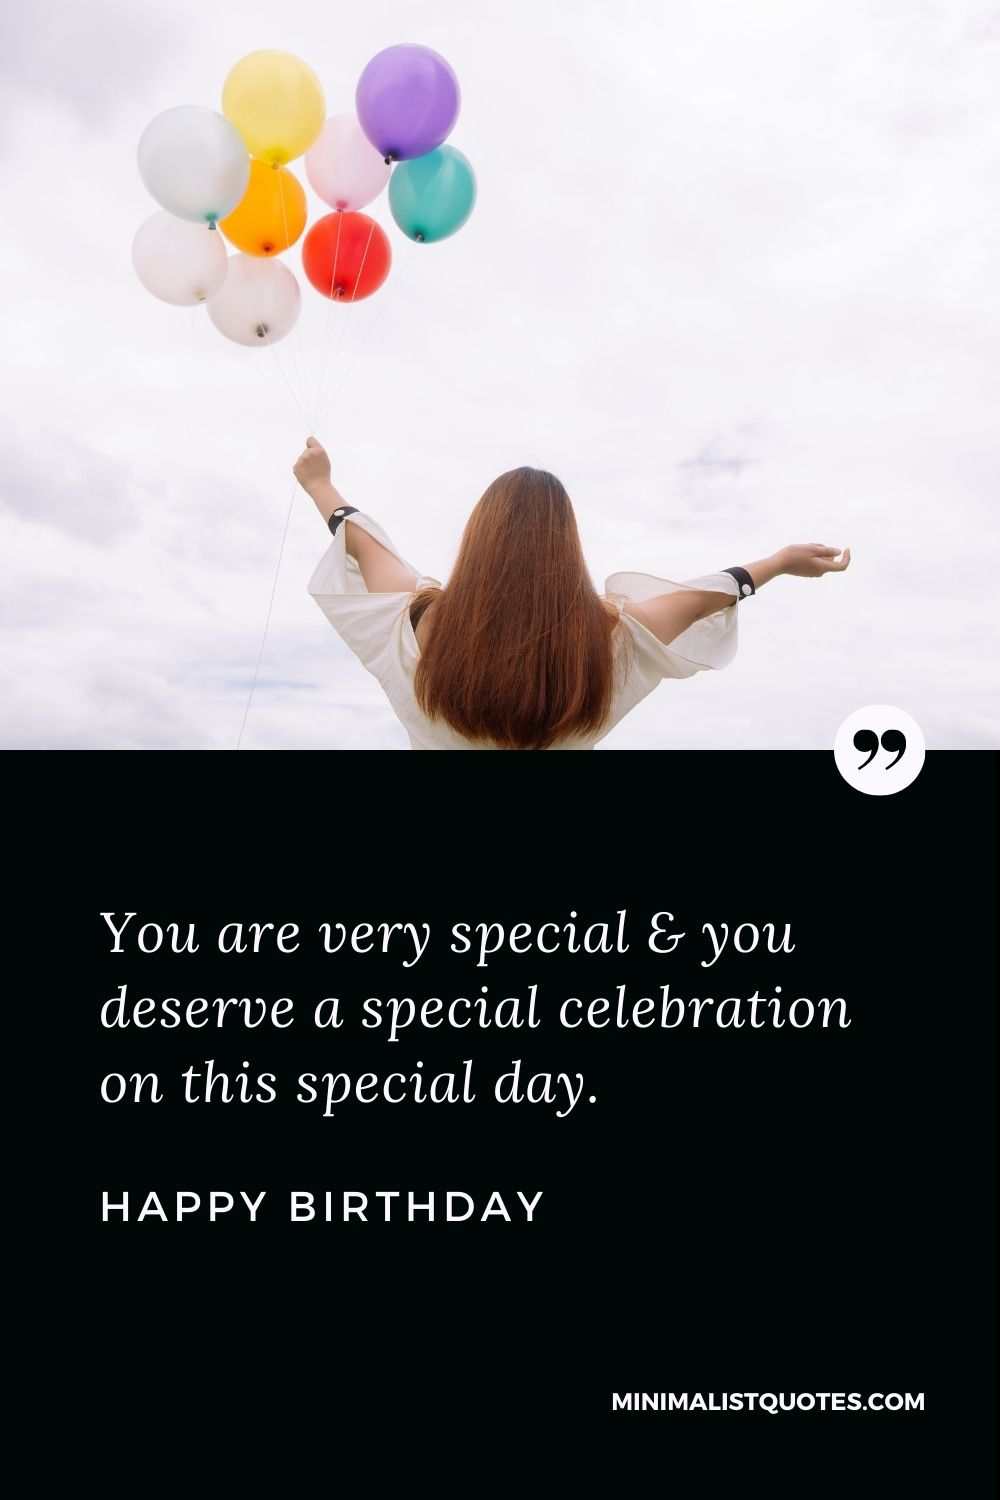 Happy Birthday Wishes - You are very special & you deservea special celebration on this special day.